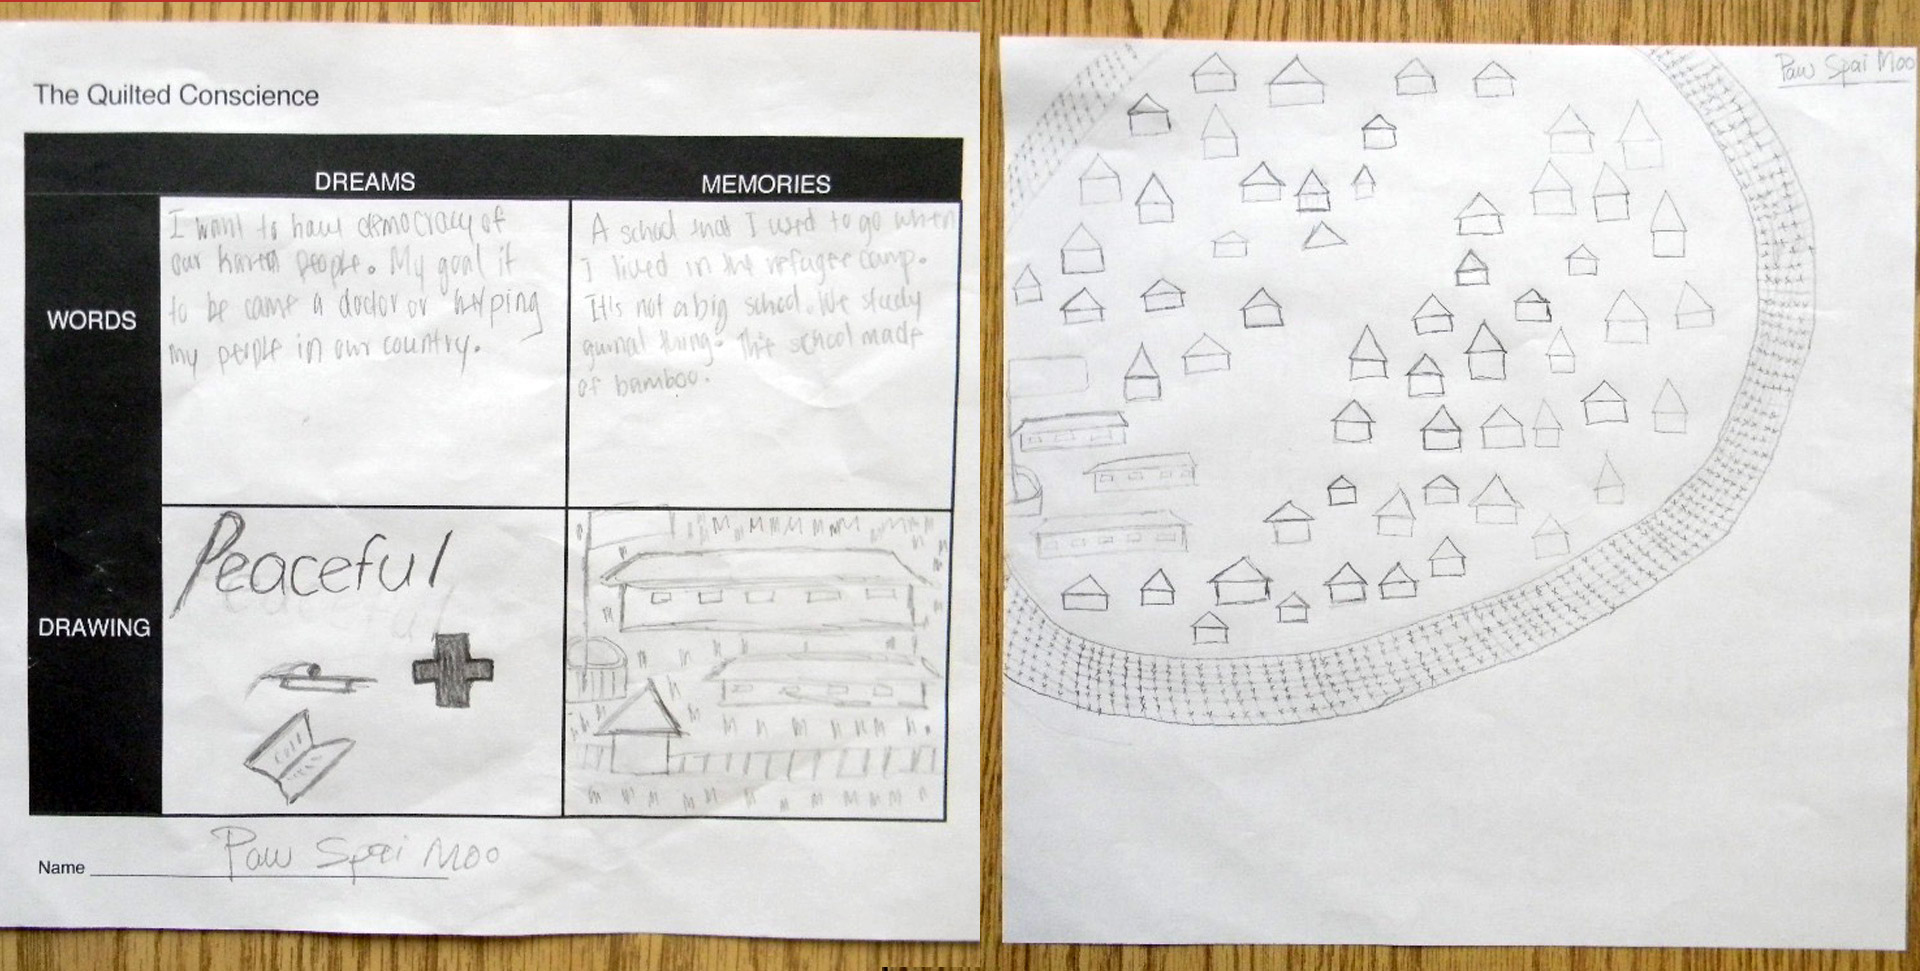 Paw Spai Moo's initial stories & sketches, with a revised Memories sketch. Courtesy Susan Hertzler, Lincoln H.S.